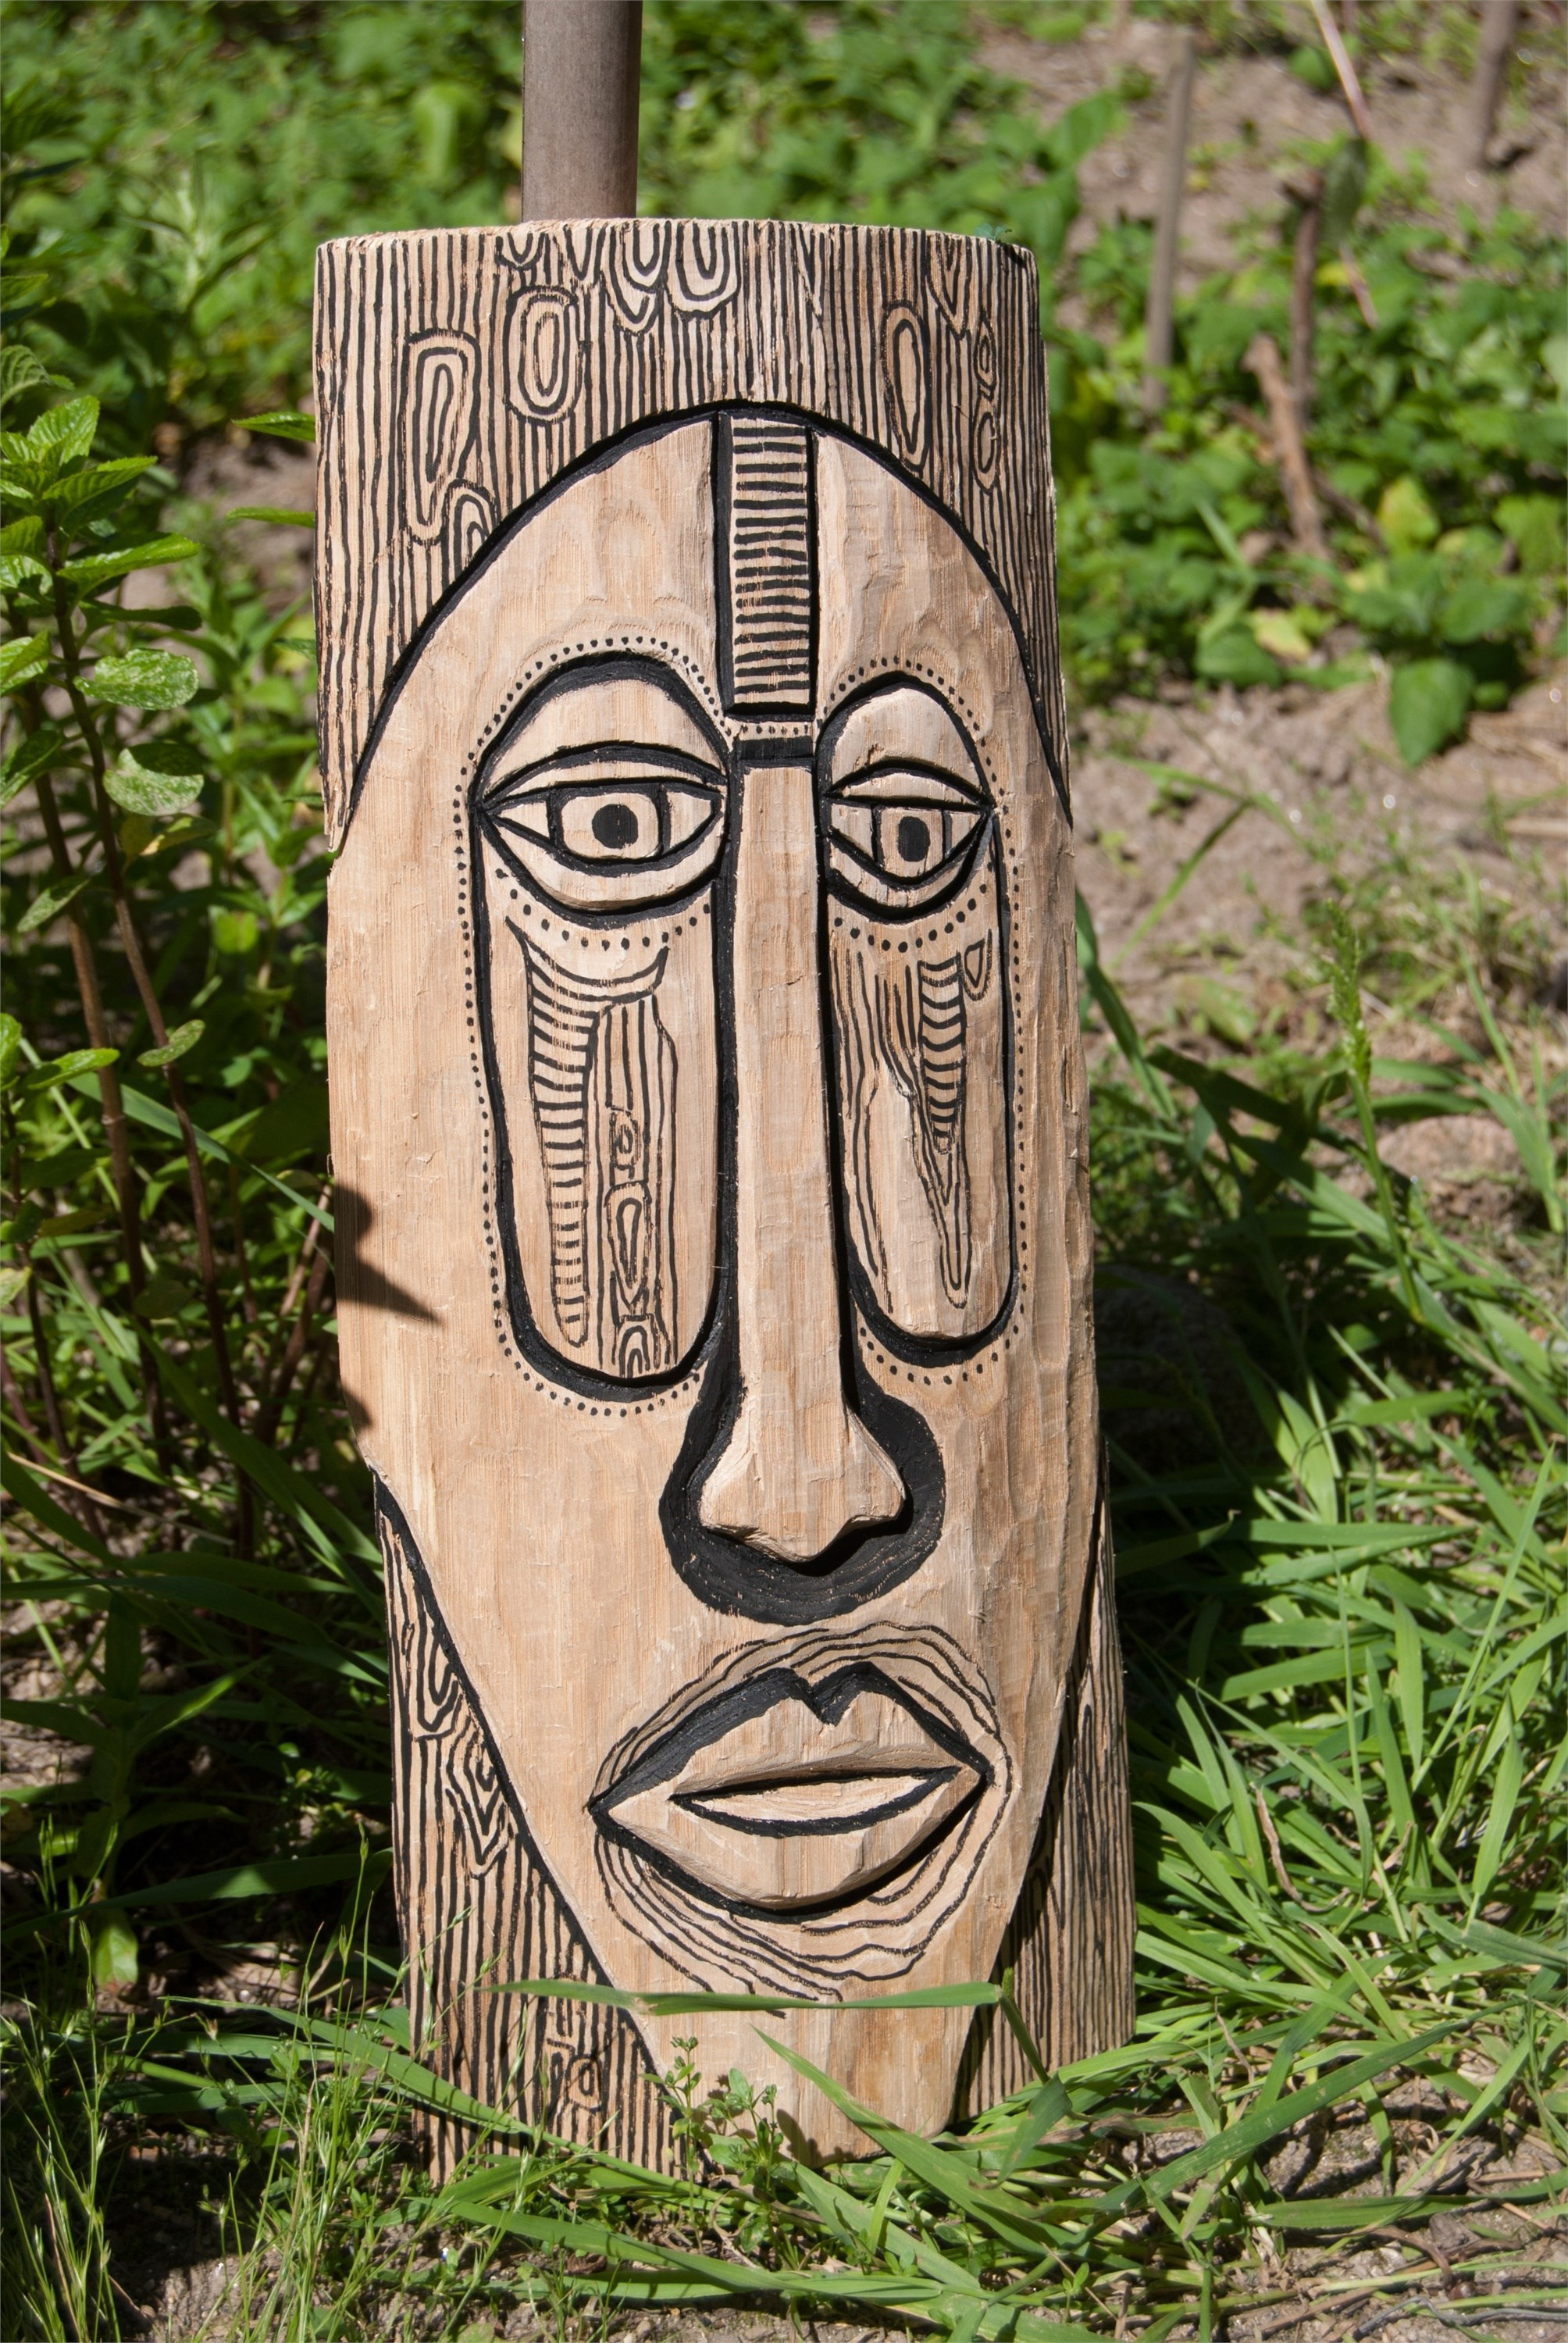 Wood mask, original Abstract Wood Sculpture by Inês Peres